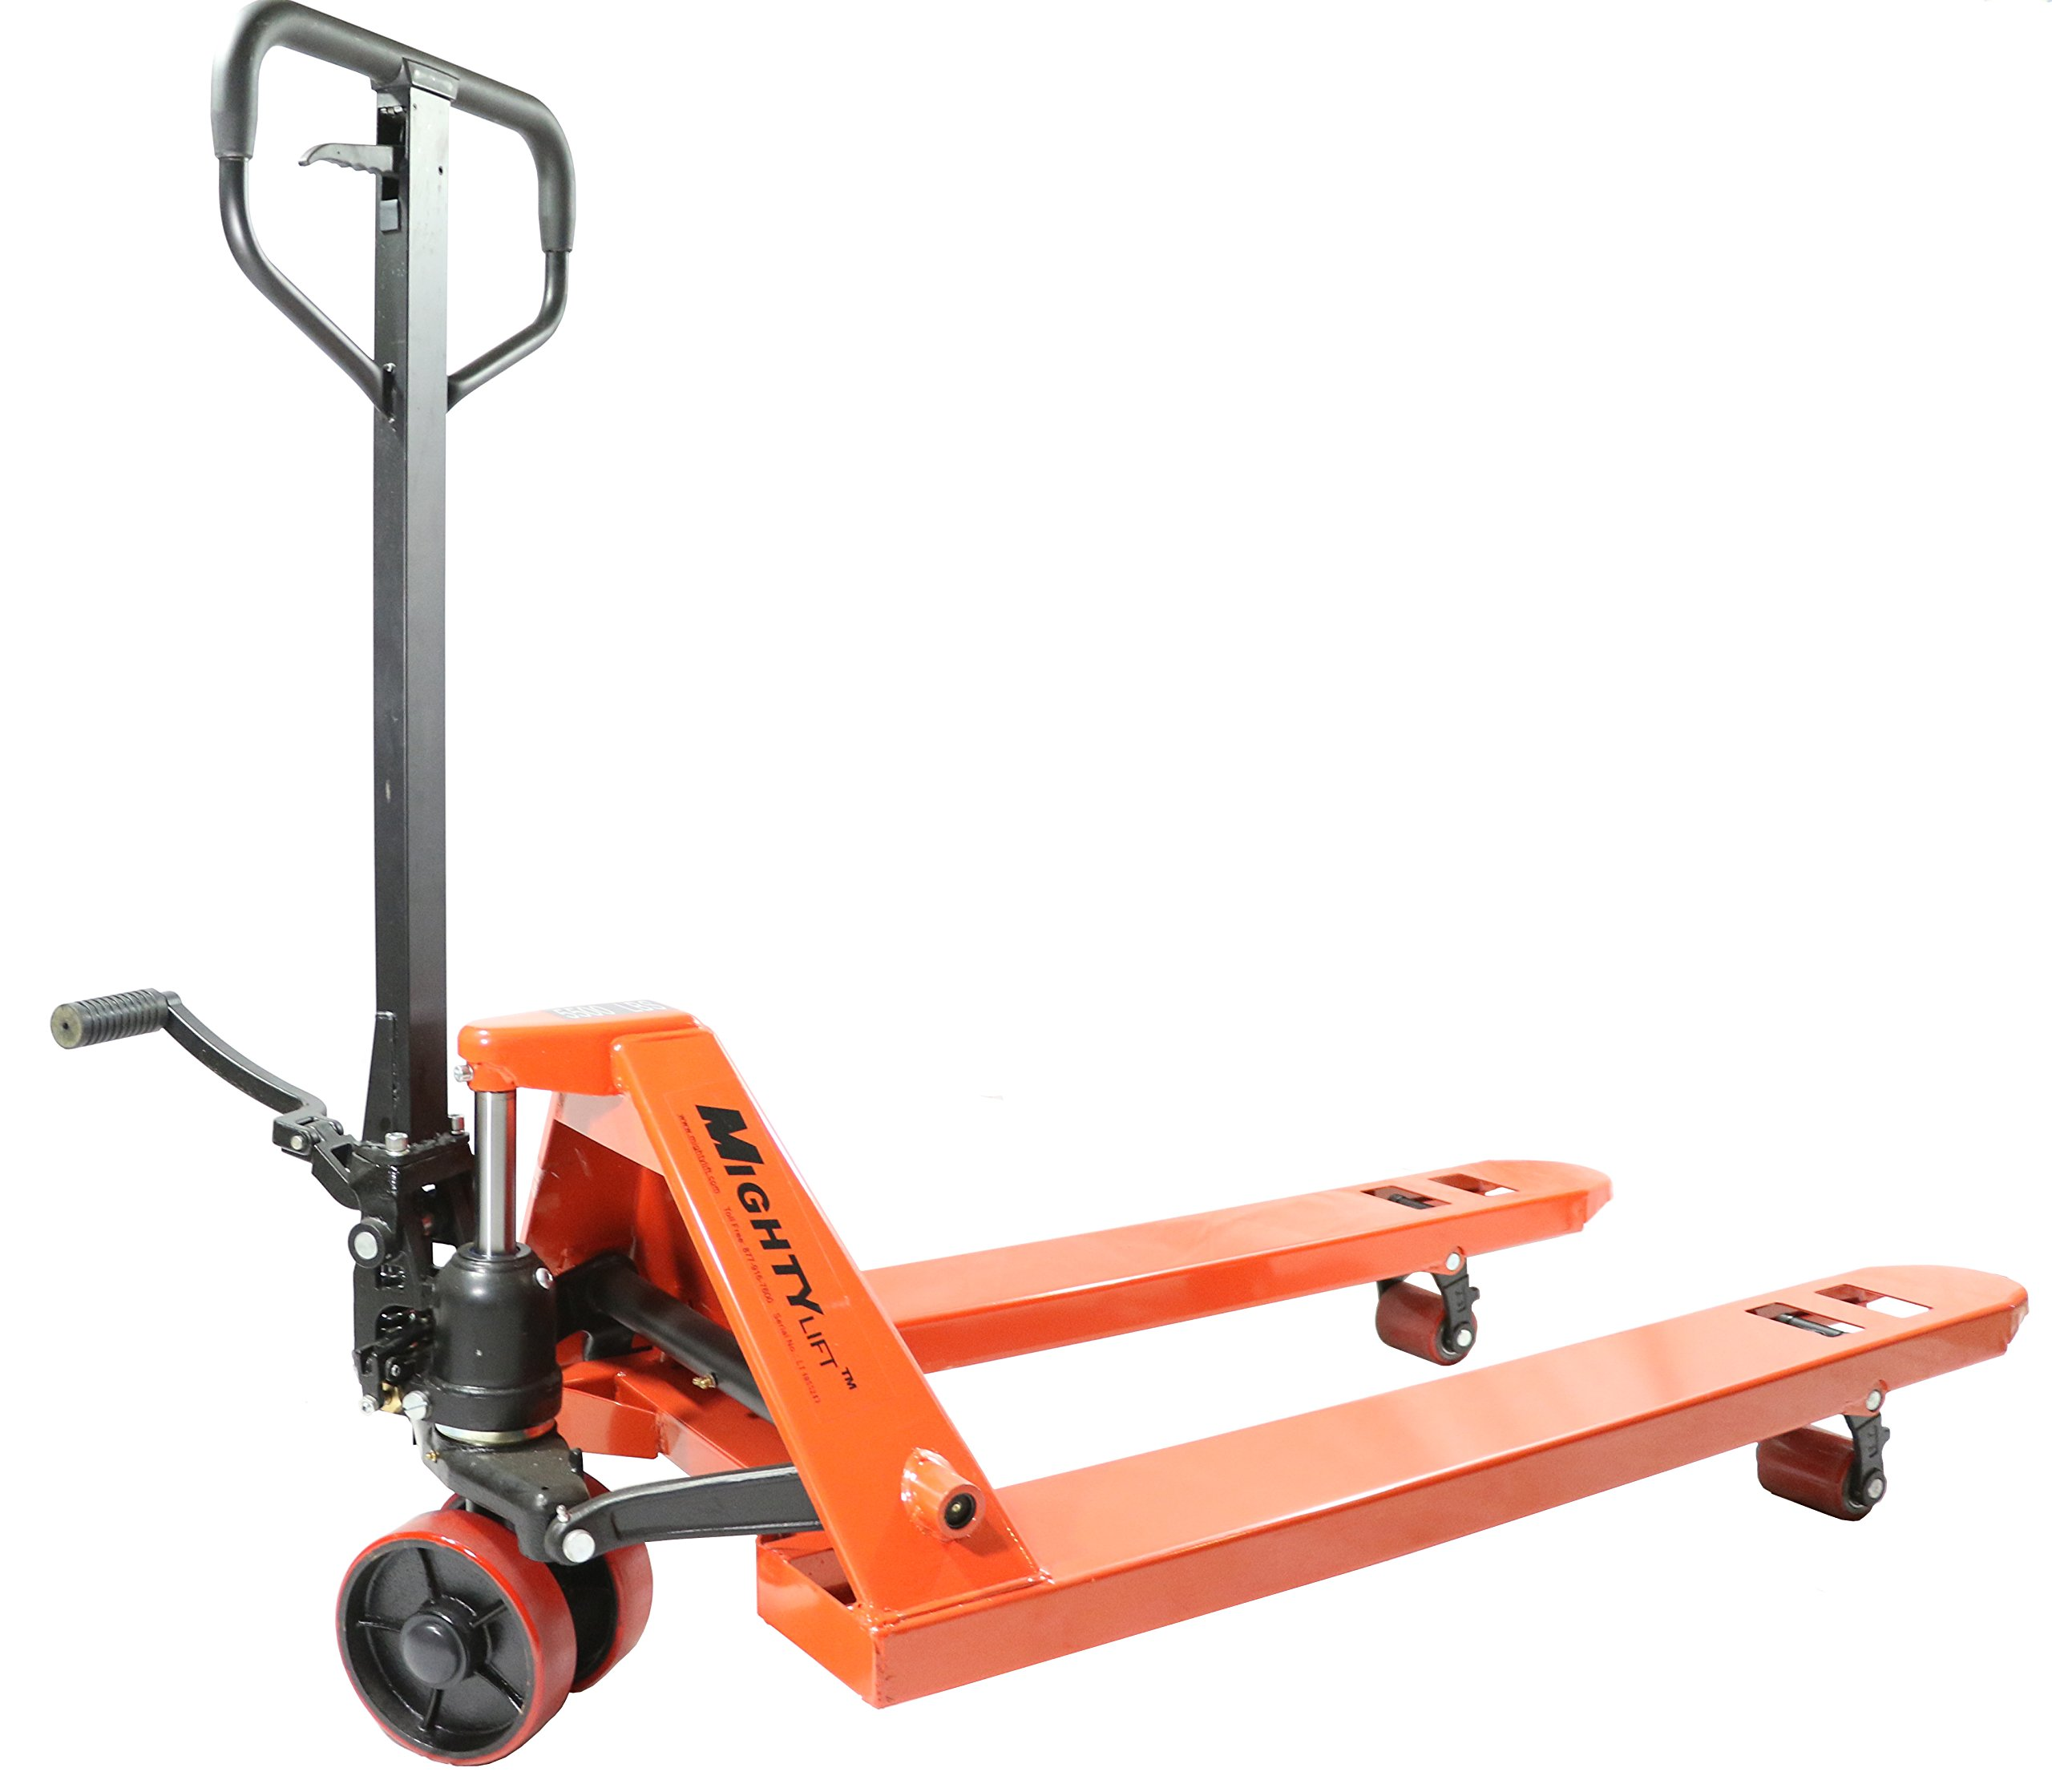 "Mighty Lift ML55E Heavy Duty Pallet Jack Truck with Hand-Actuated Control Lever, Wheels Polyurethane on Steel, 5500 lb. Capacity, 27"" x 48"""